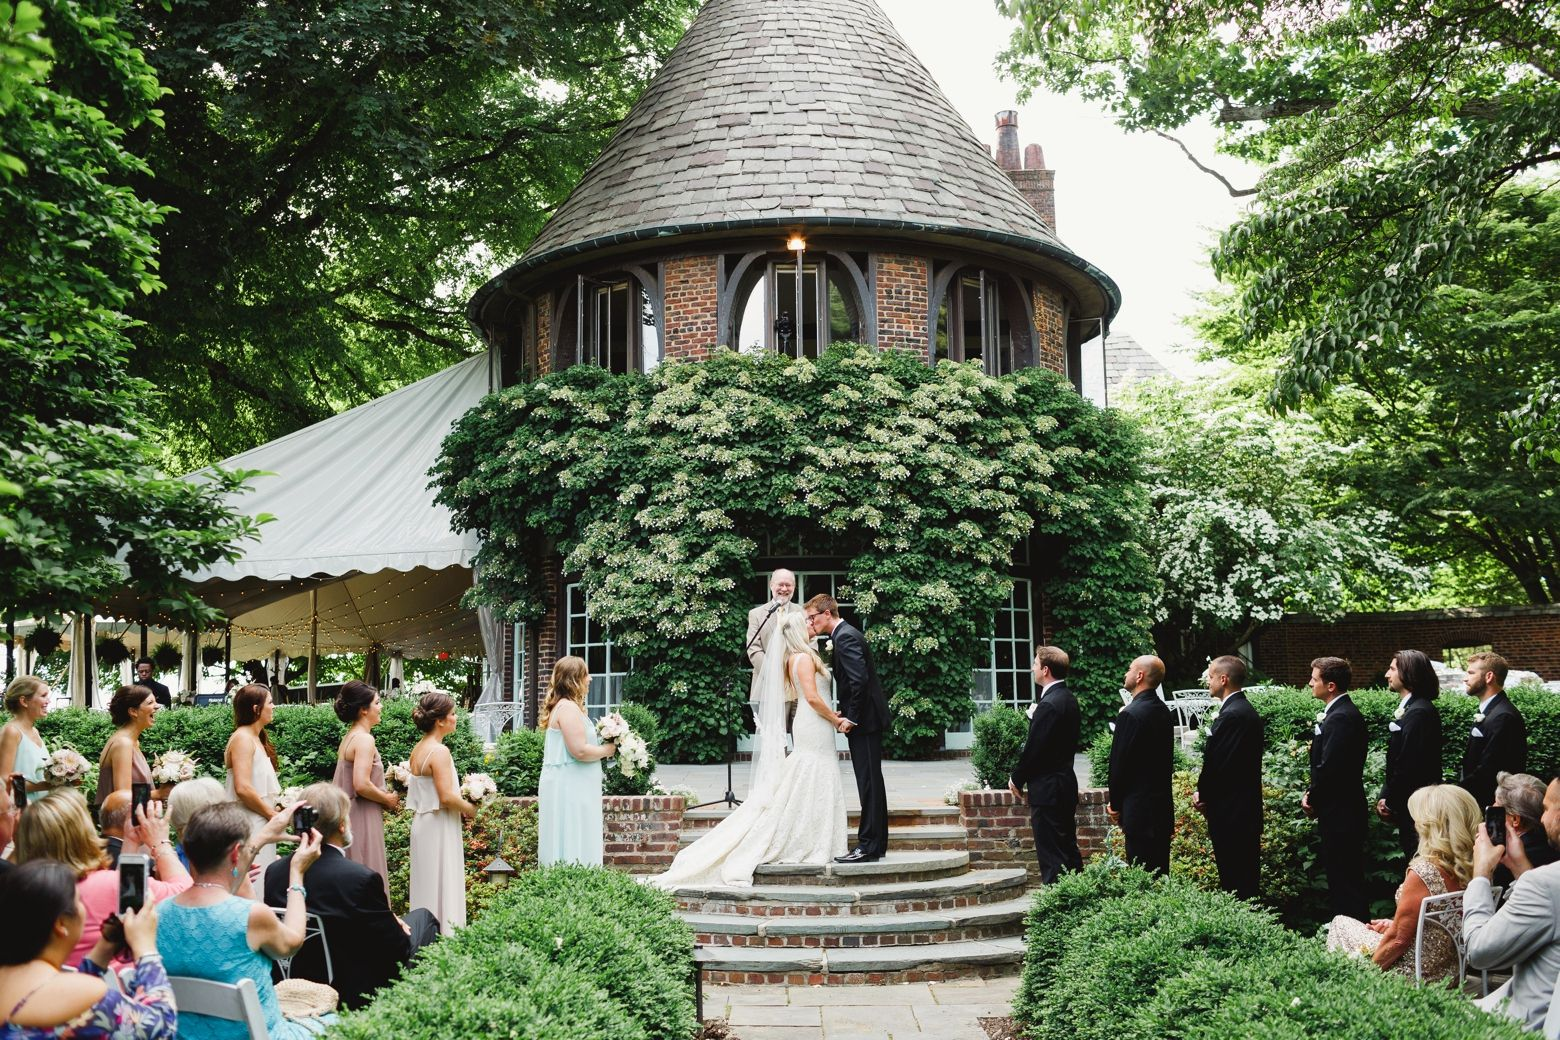 Wedding Venues In Pa.Cheap Wedding Venues Pa Inspirational Great Outdoor Wedding Venues